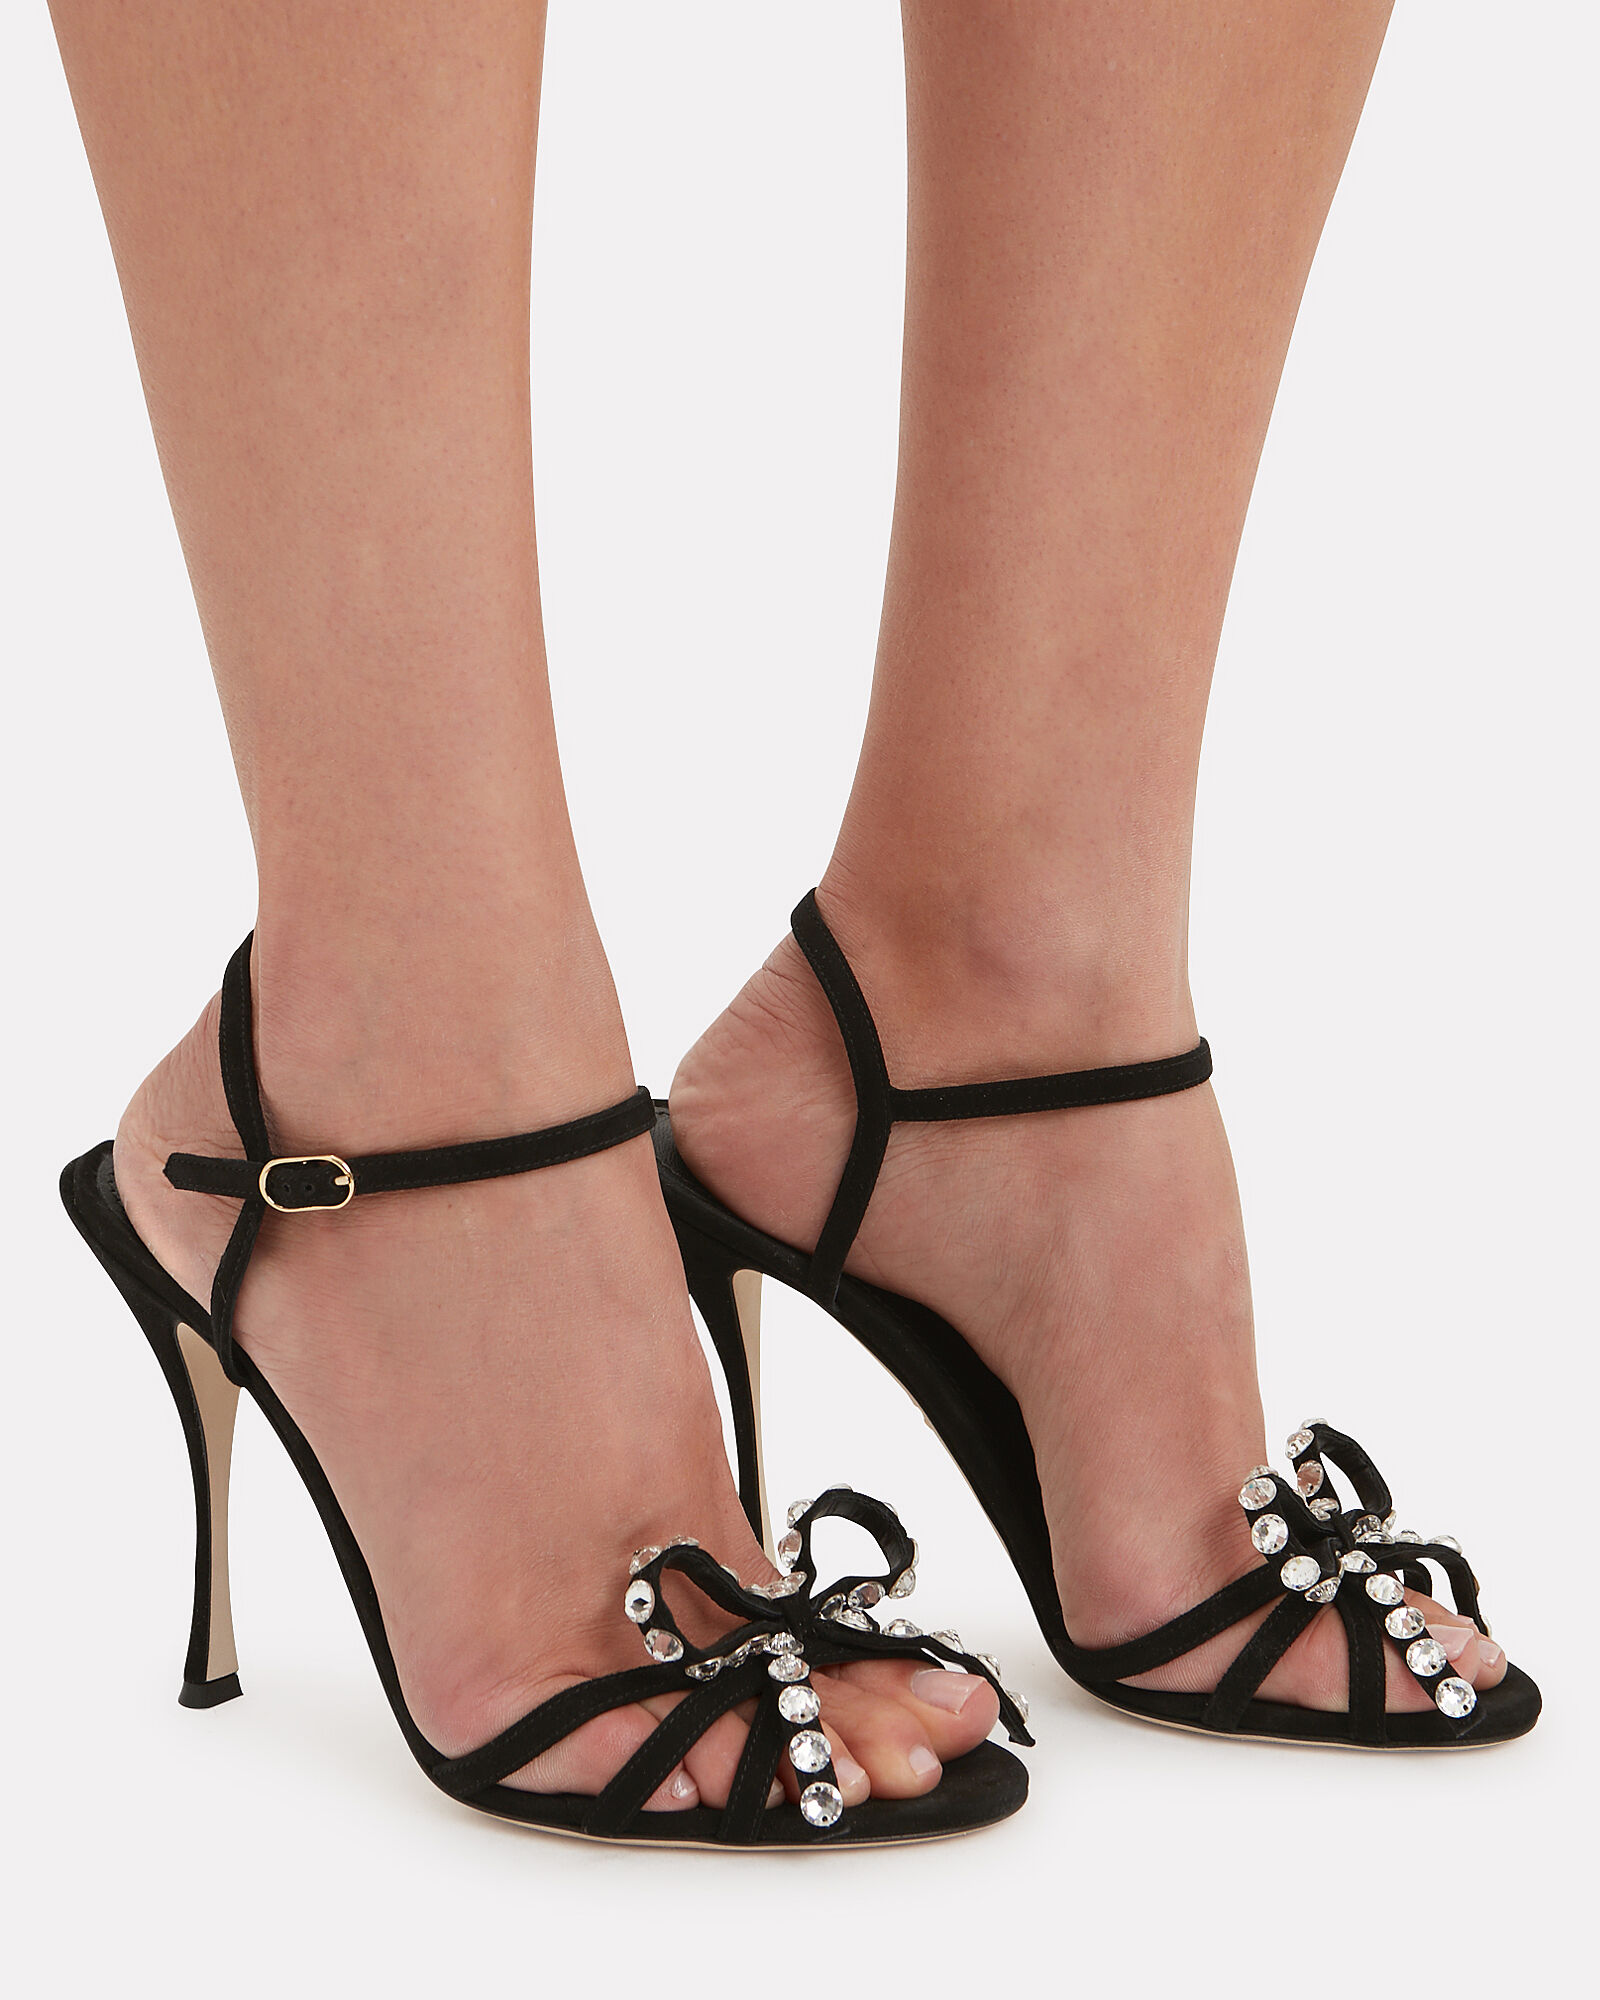 Dia Suede High Sandals, BLACK, hi-res